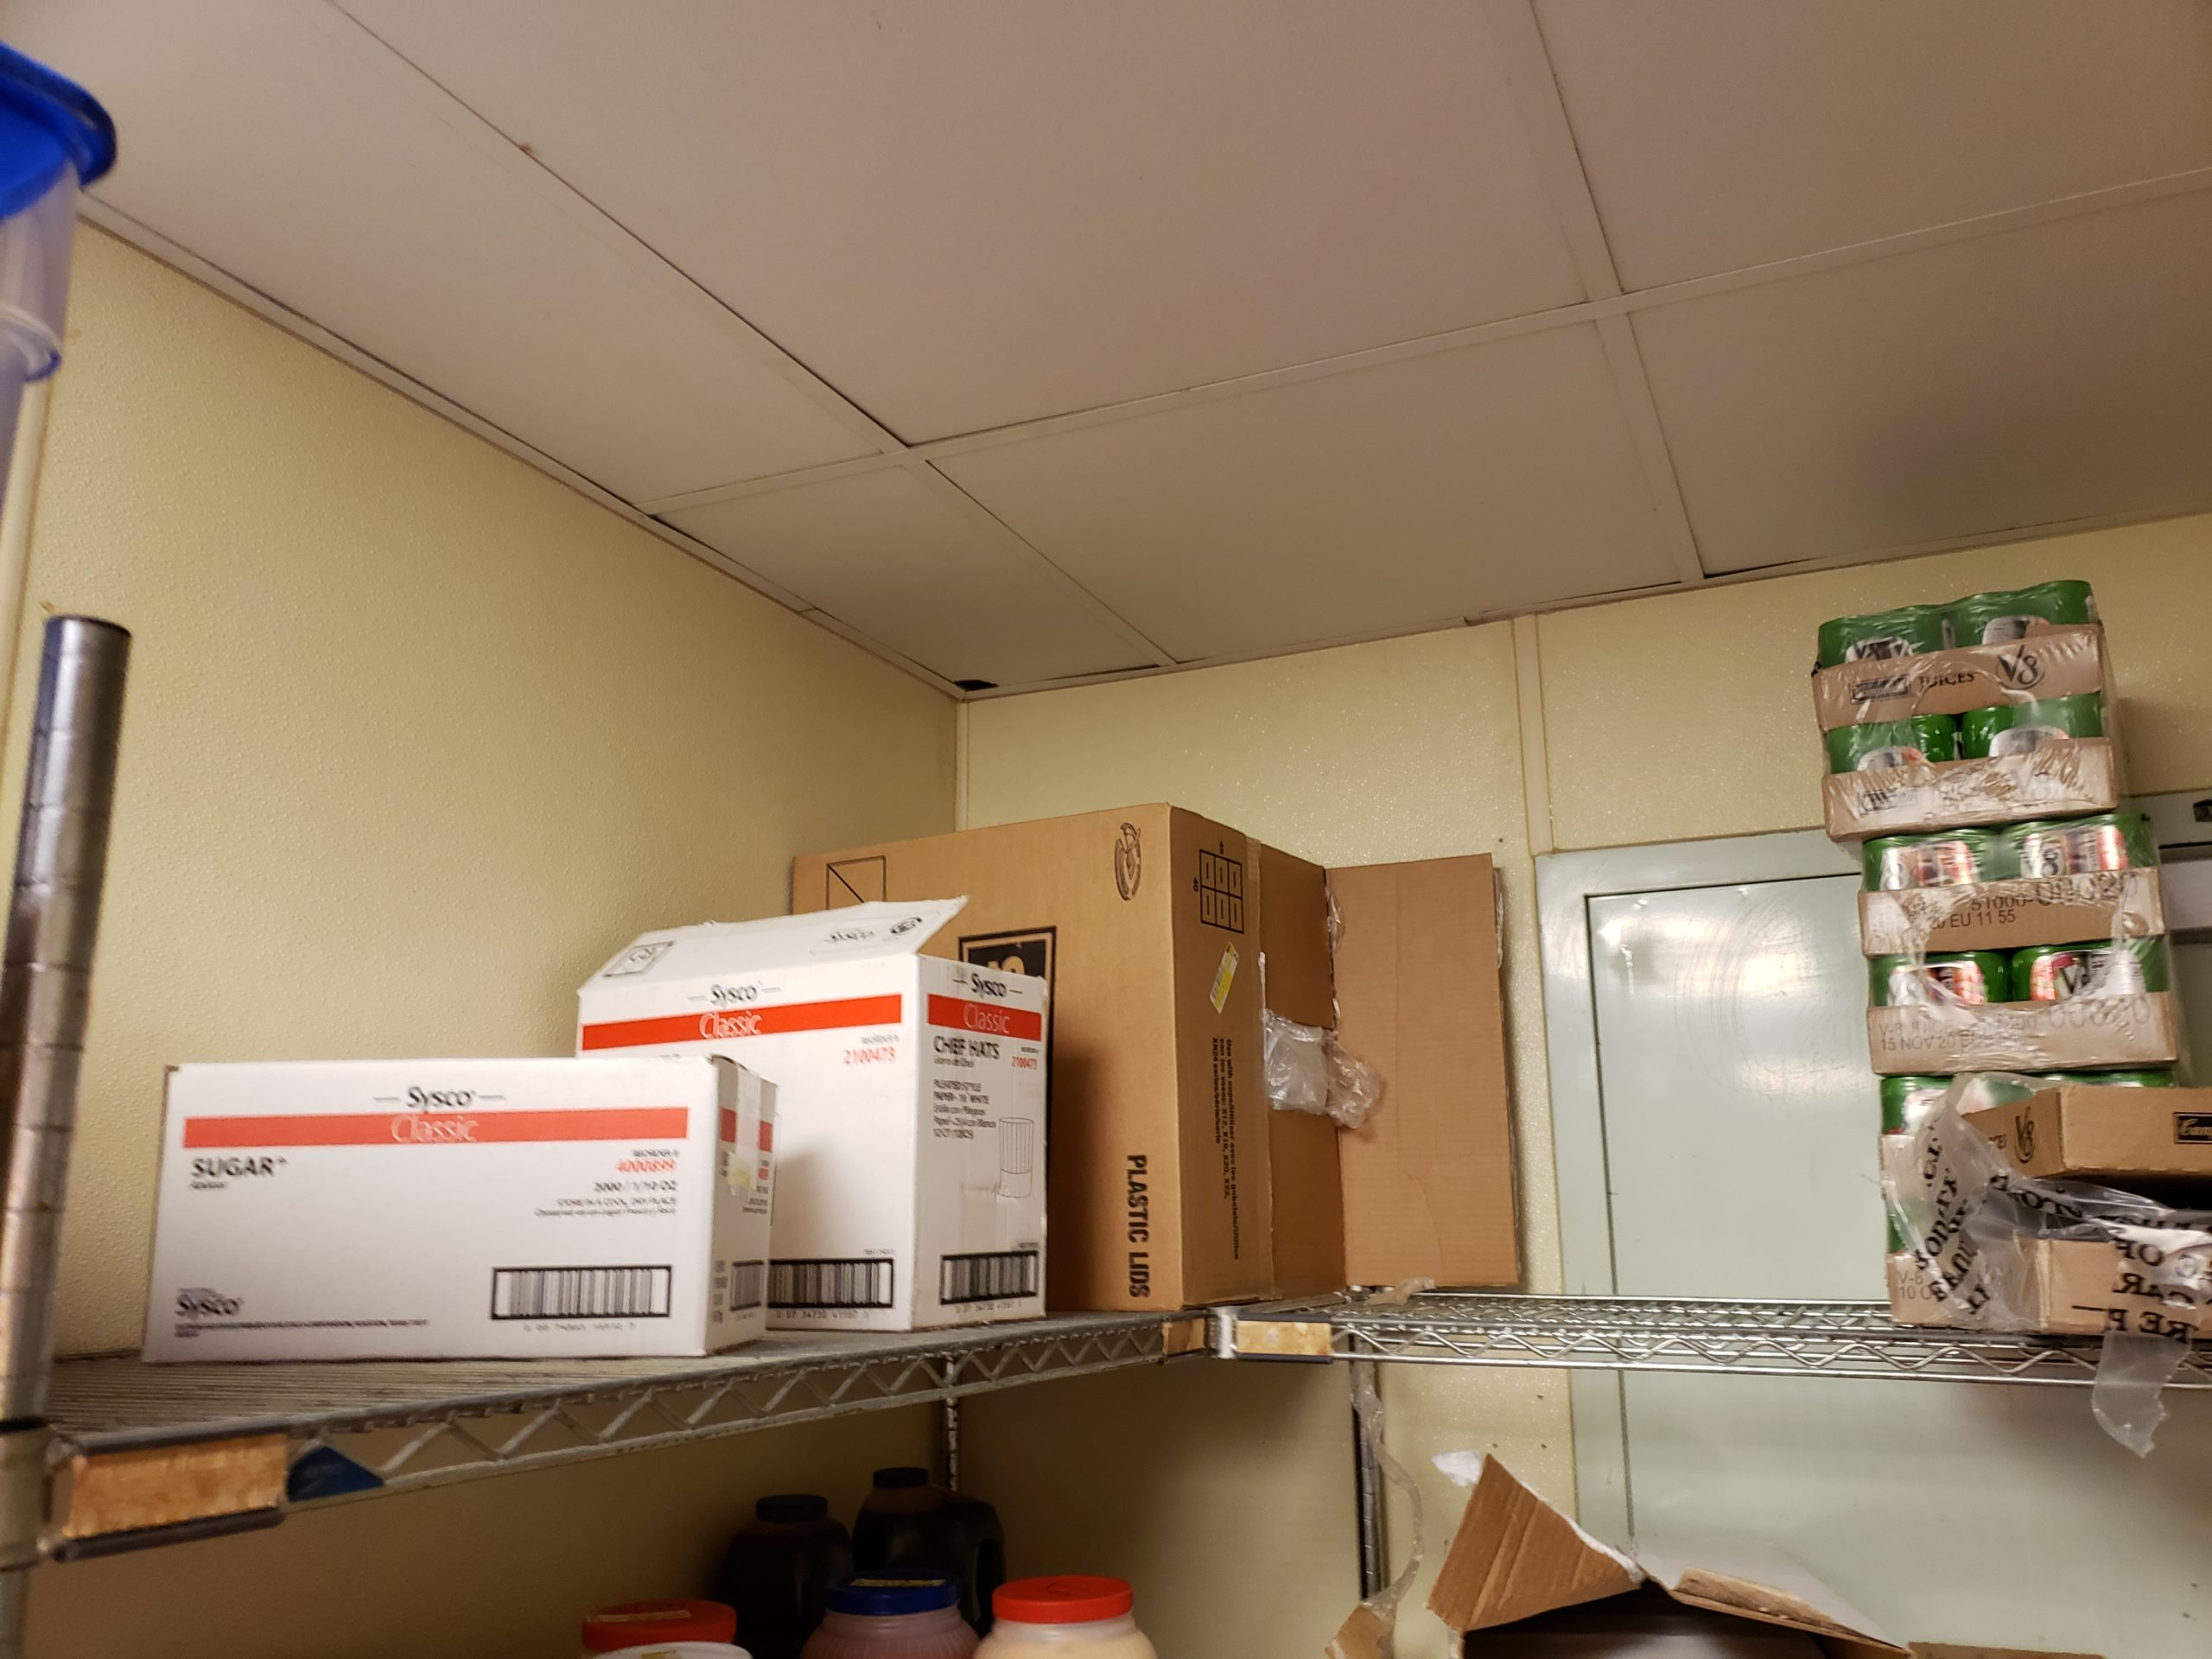 cardboard storage with mouse hole in ceiling